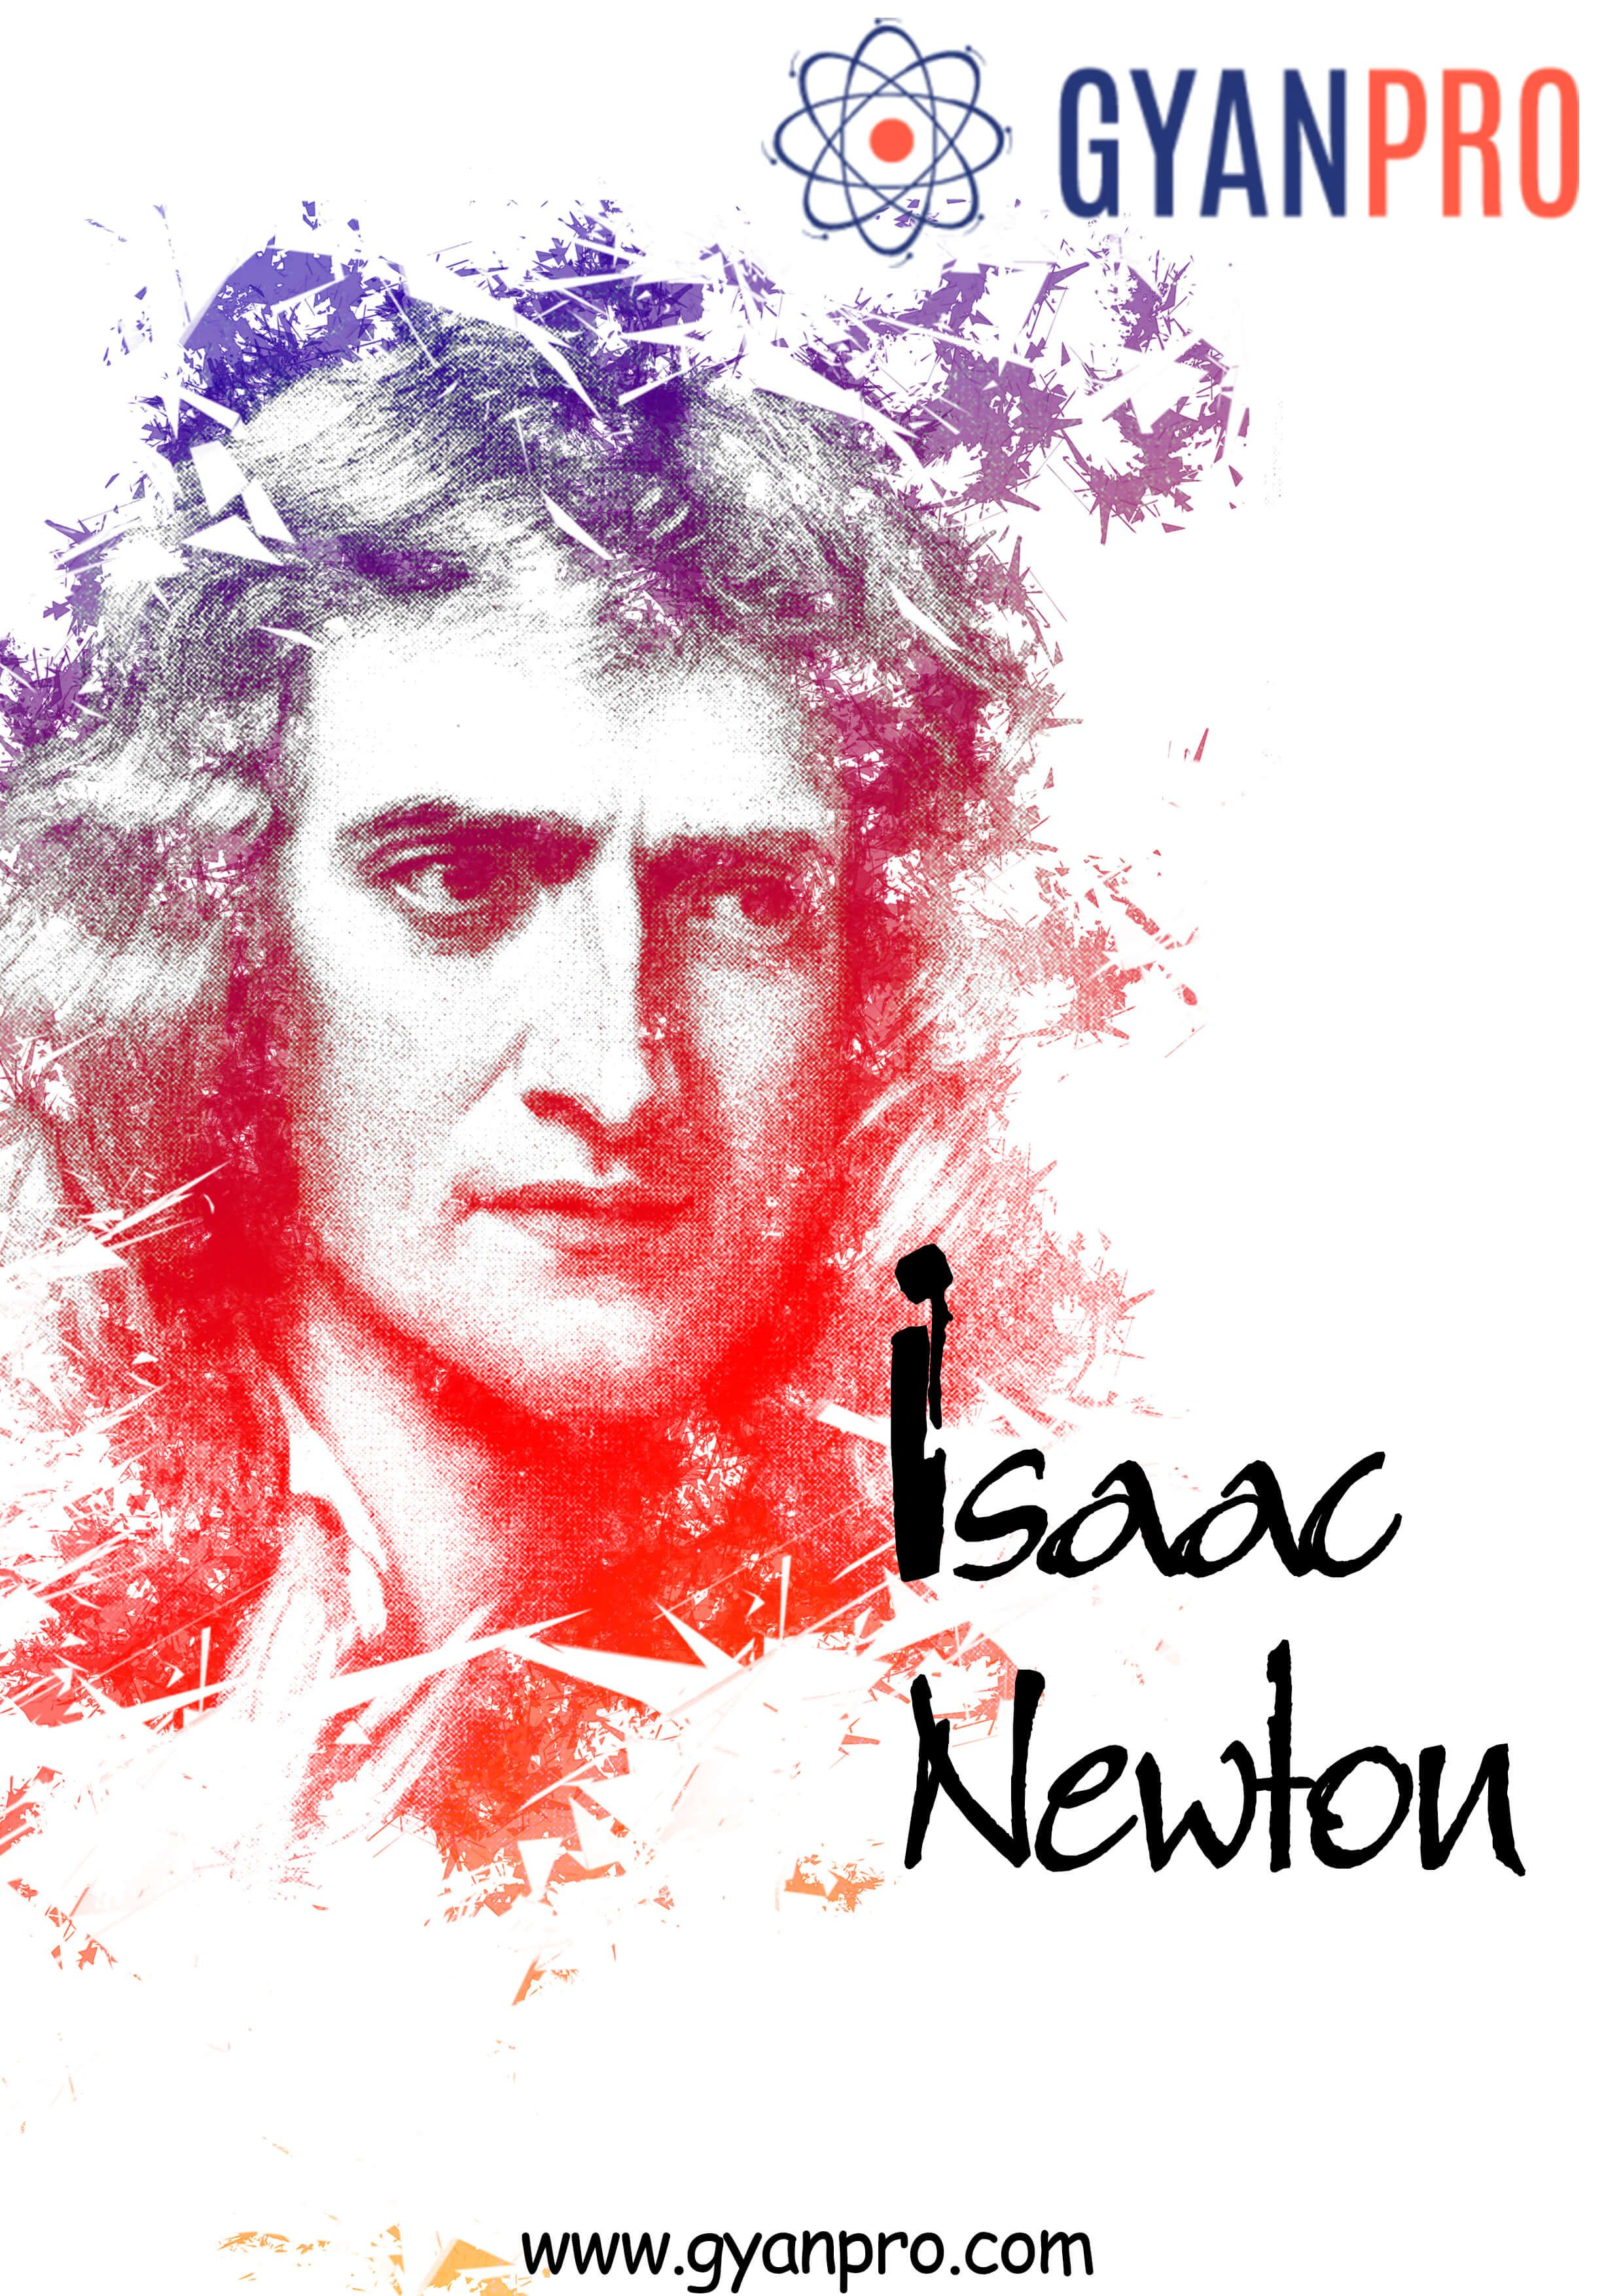 Sir Isaac Newton With Images Isaac Newton Classical Physics Force And Motion